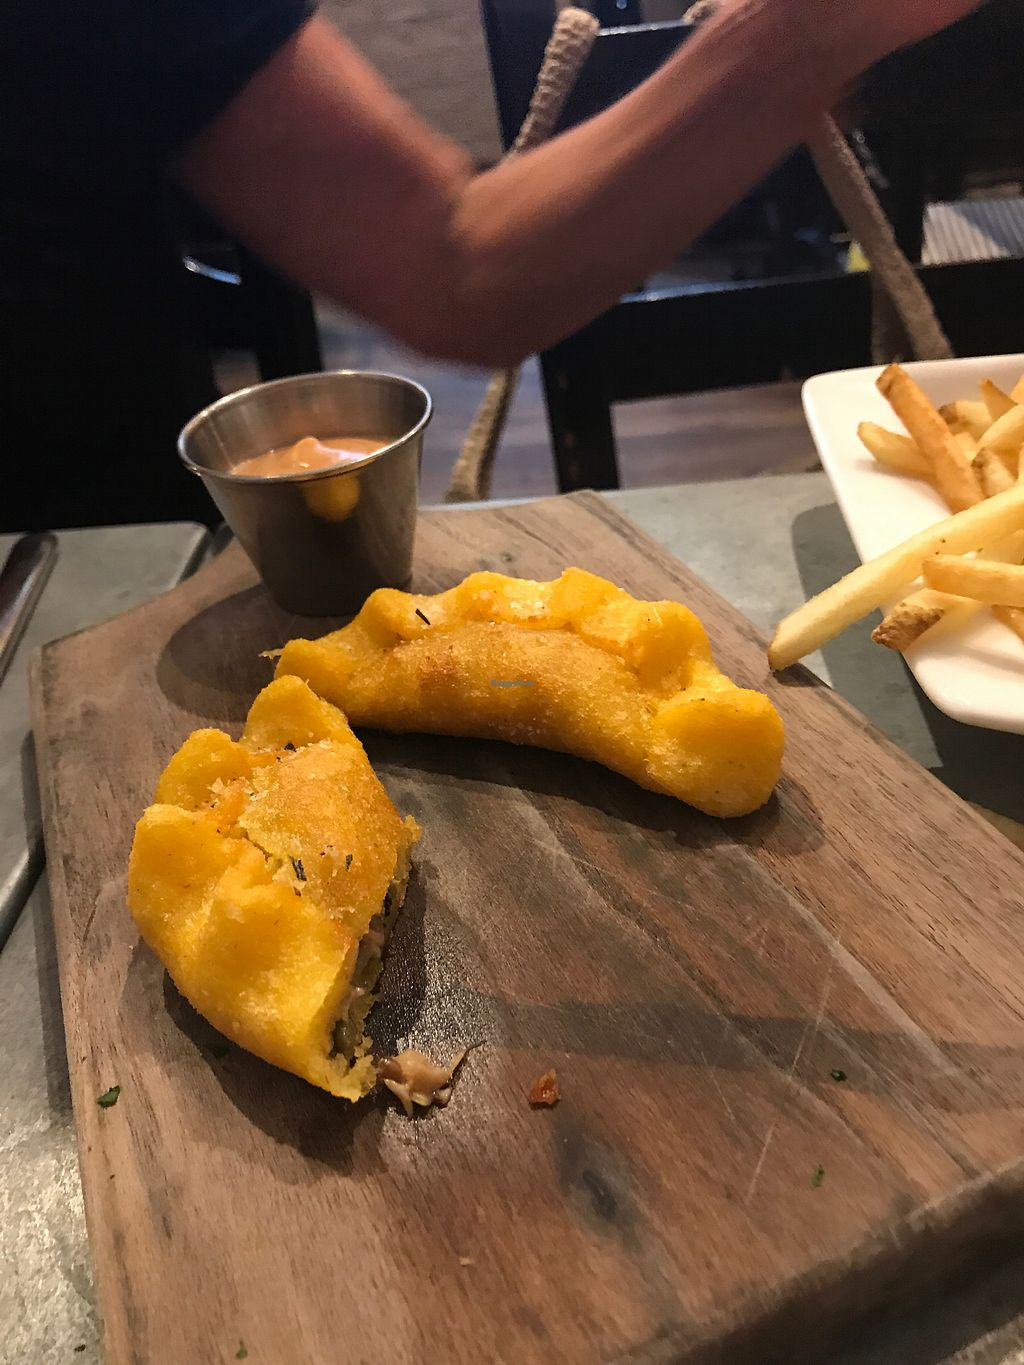 """Photo of Bar Bombon  by <a href=""""/members/profile/gemmafee"""">gemmafee</a> <br/>empanadas  <br/> July 20, 2017  - <a href='/contact/abuse/image/61877/282347'>Report</a>"""